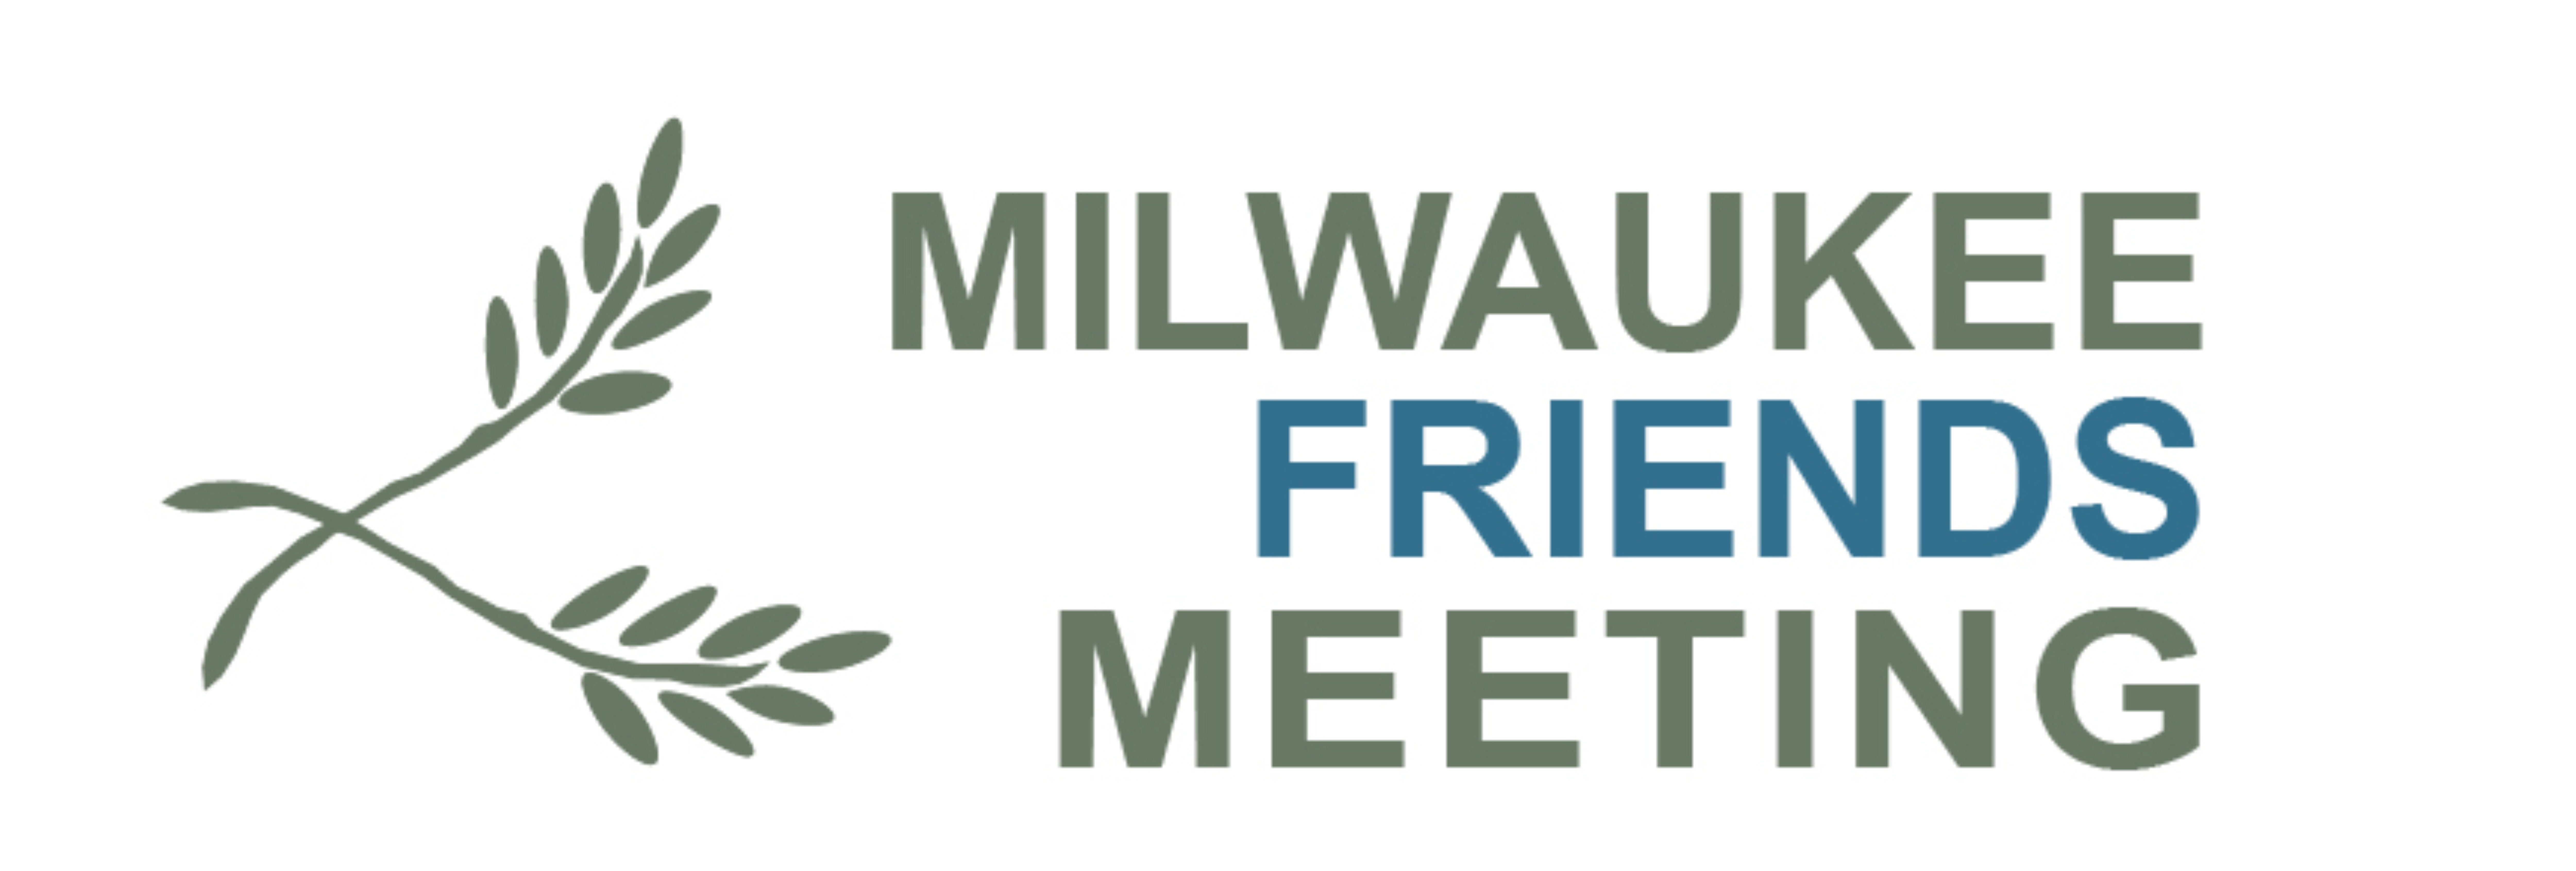 Milwaukee Friends Meeting